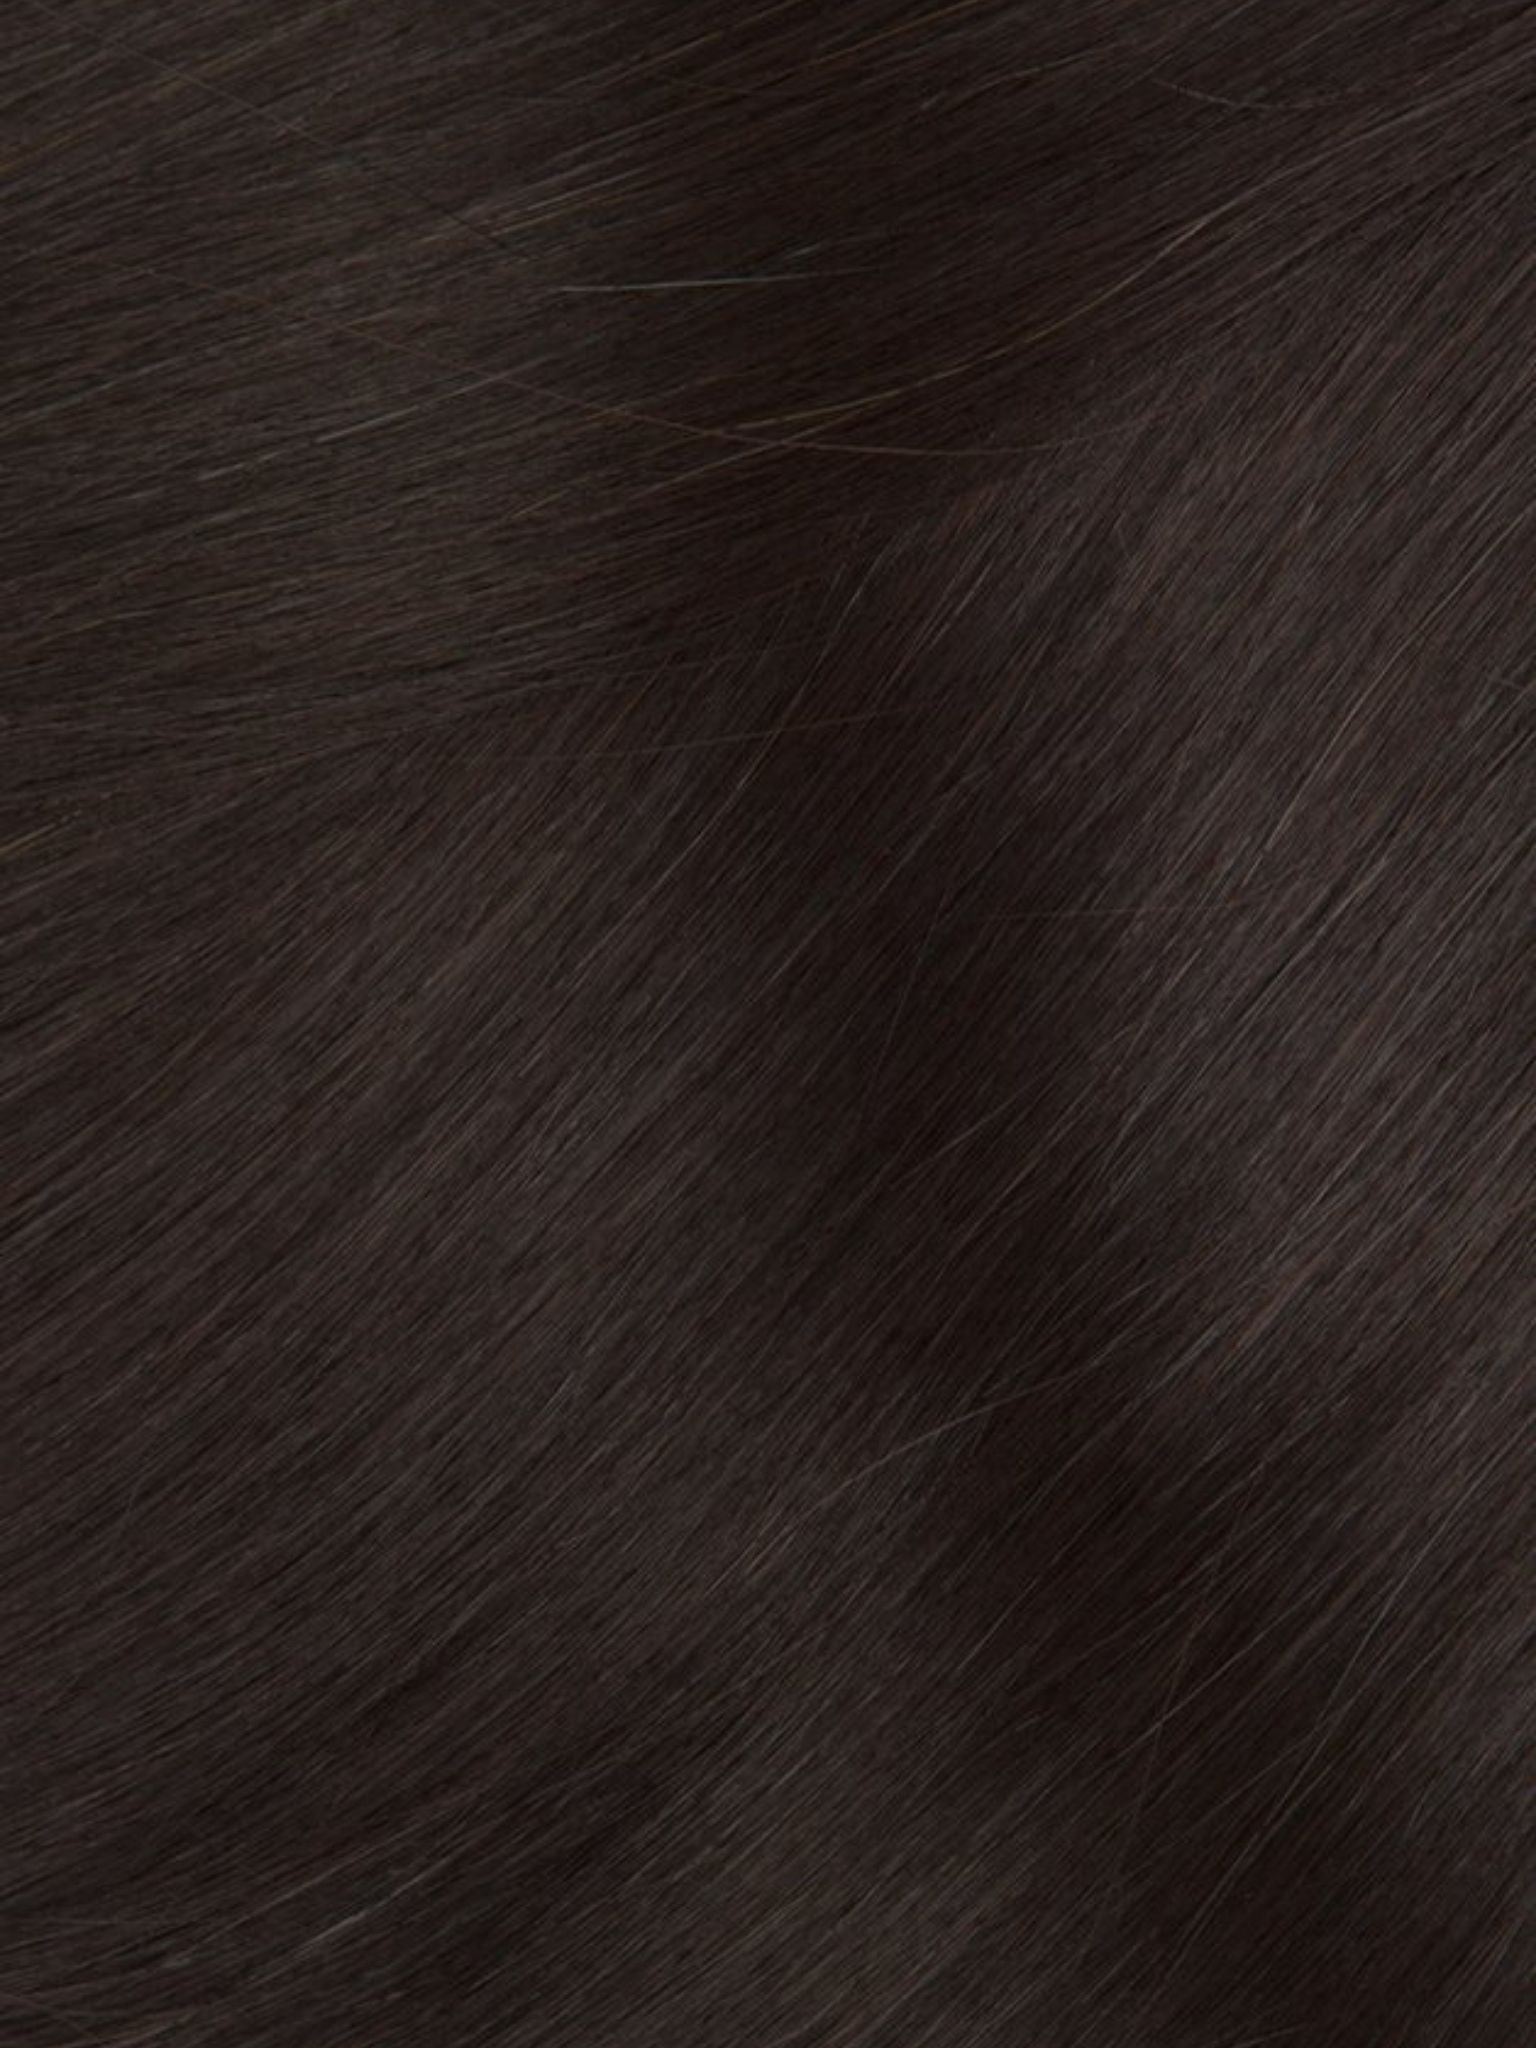 Seamless Tape-In Hair Extensions - Italian Espresso #2